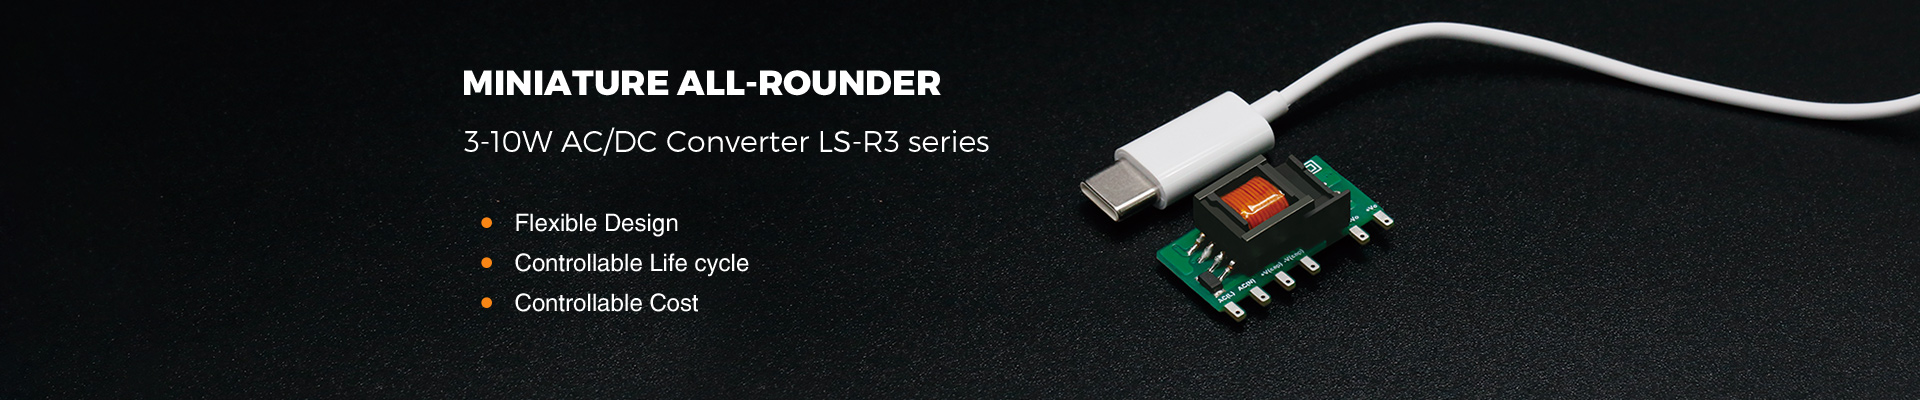 Miniature All-rounder, 3-10W AC/DC Converter LS-R3 series